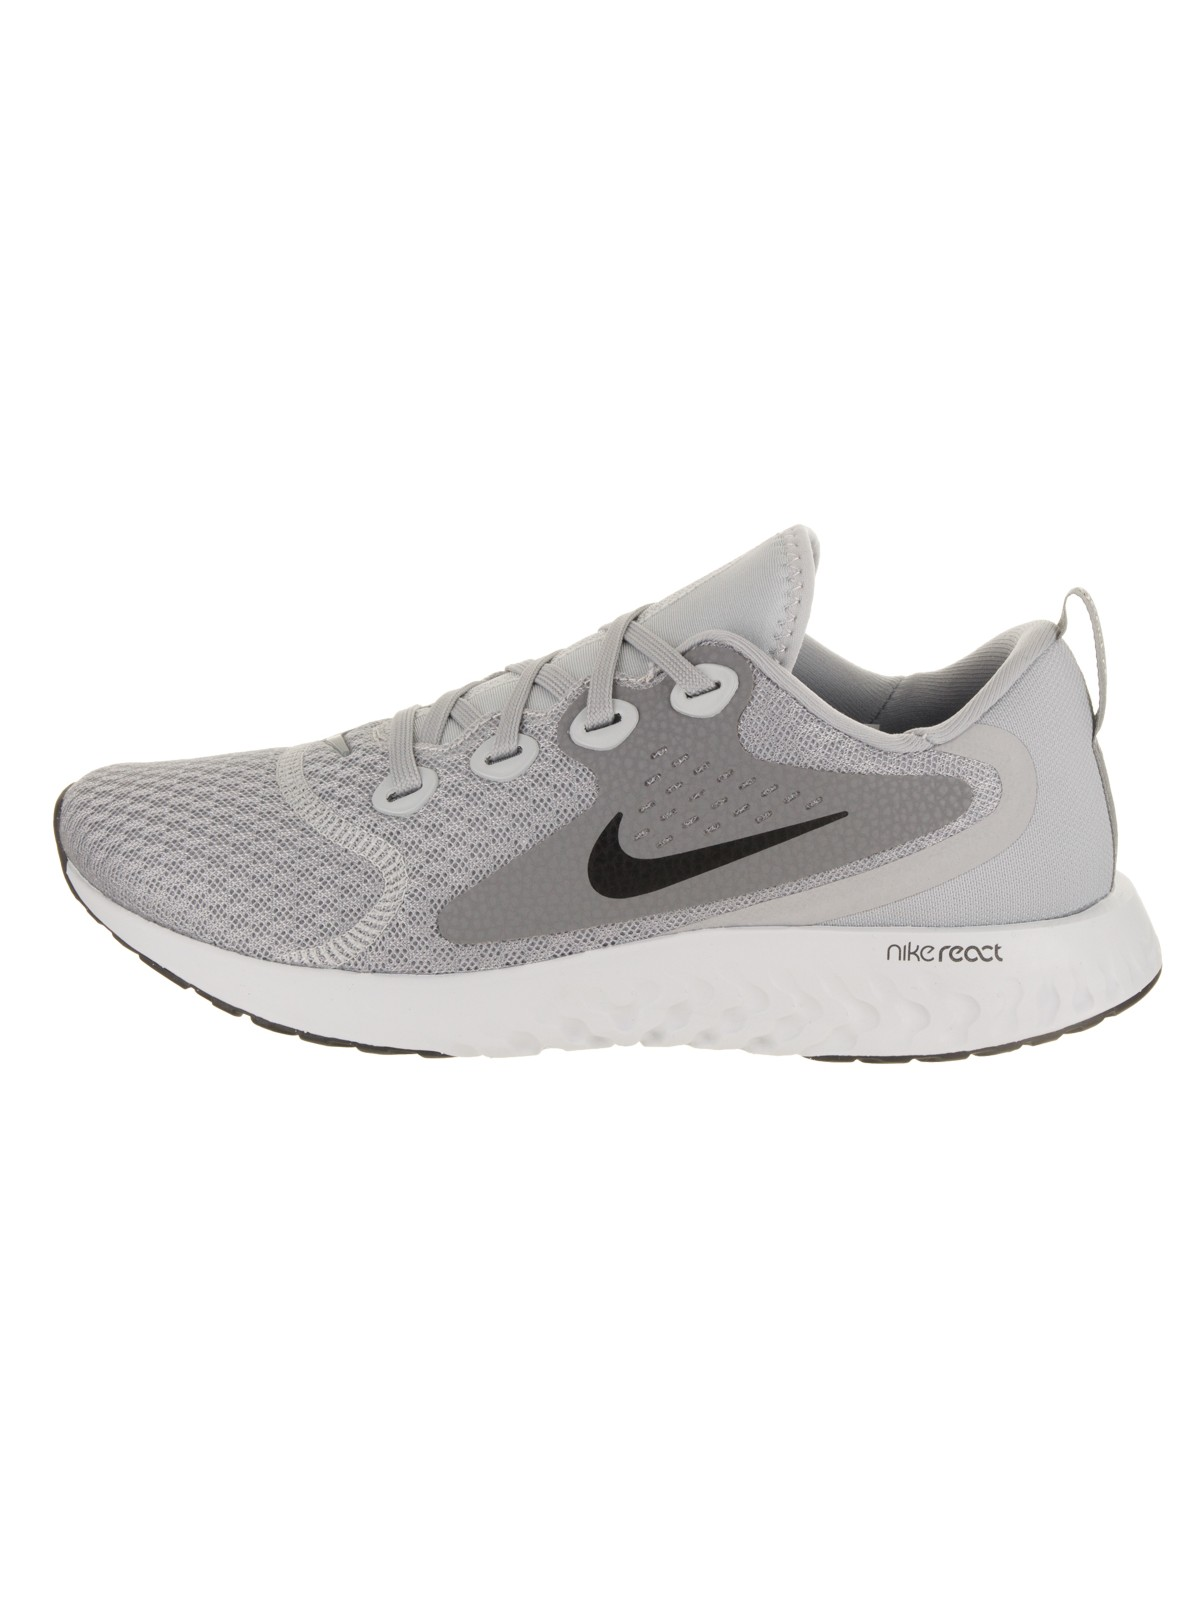 Mr/Ms - Shoes Nike Women's Legend React Running Shoes - - moderate cost 1515b7